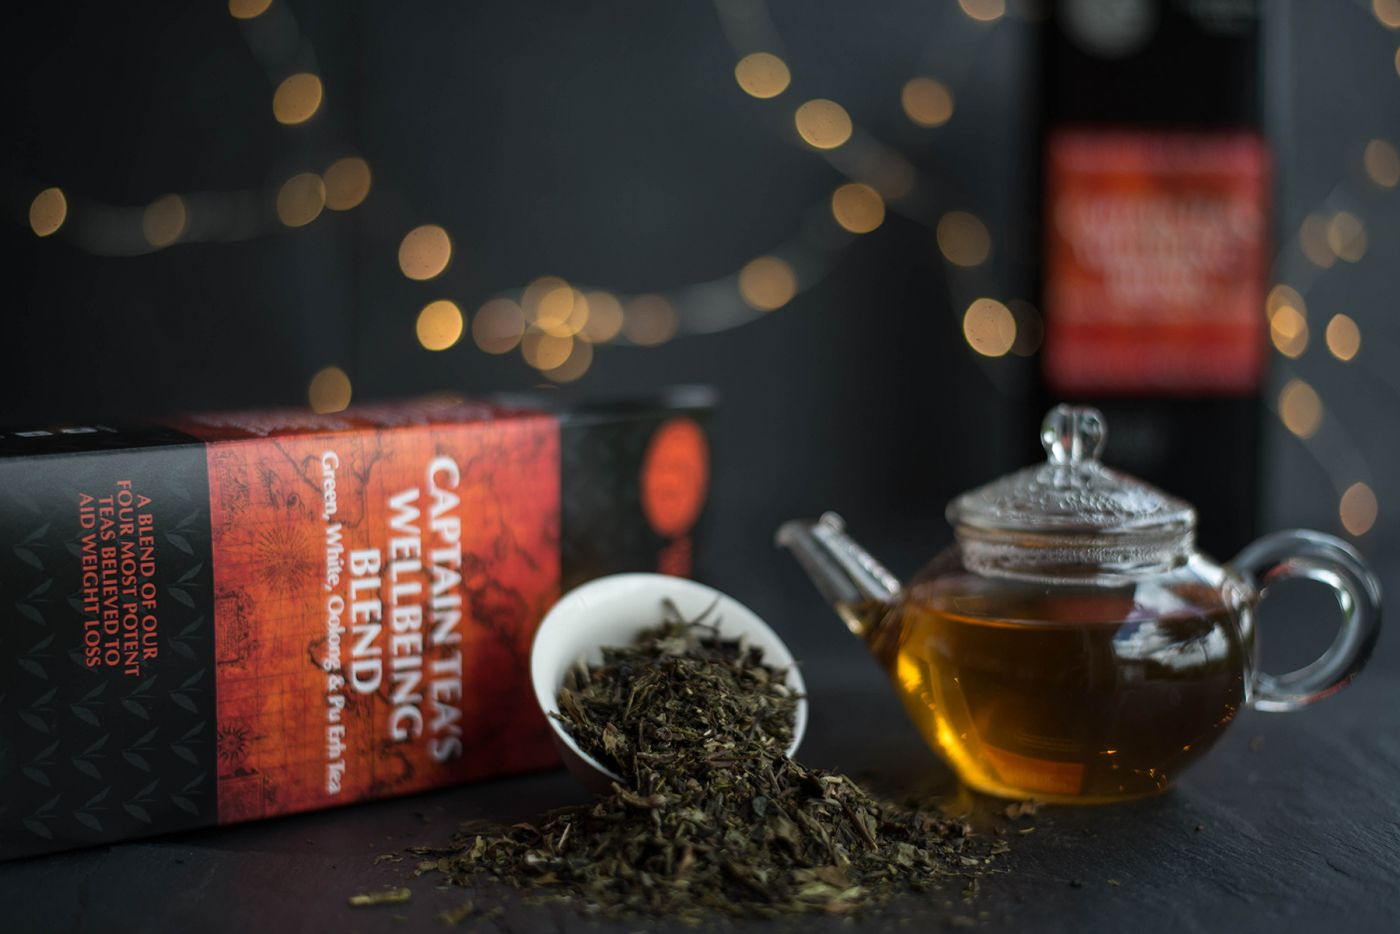 Captain Tea's Well-Being Blend